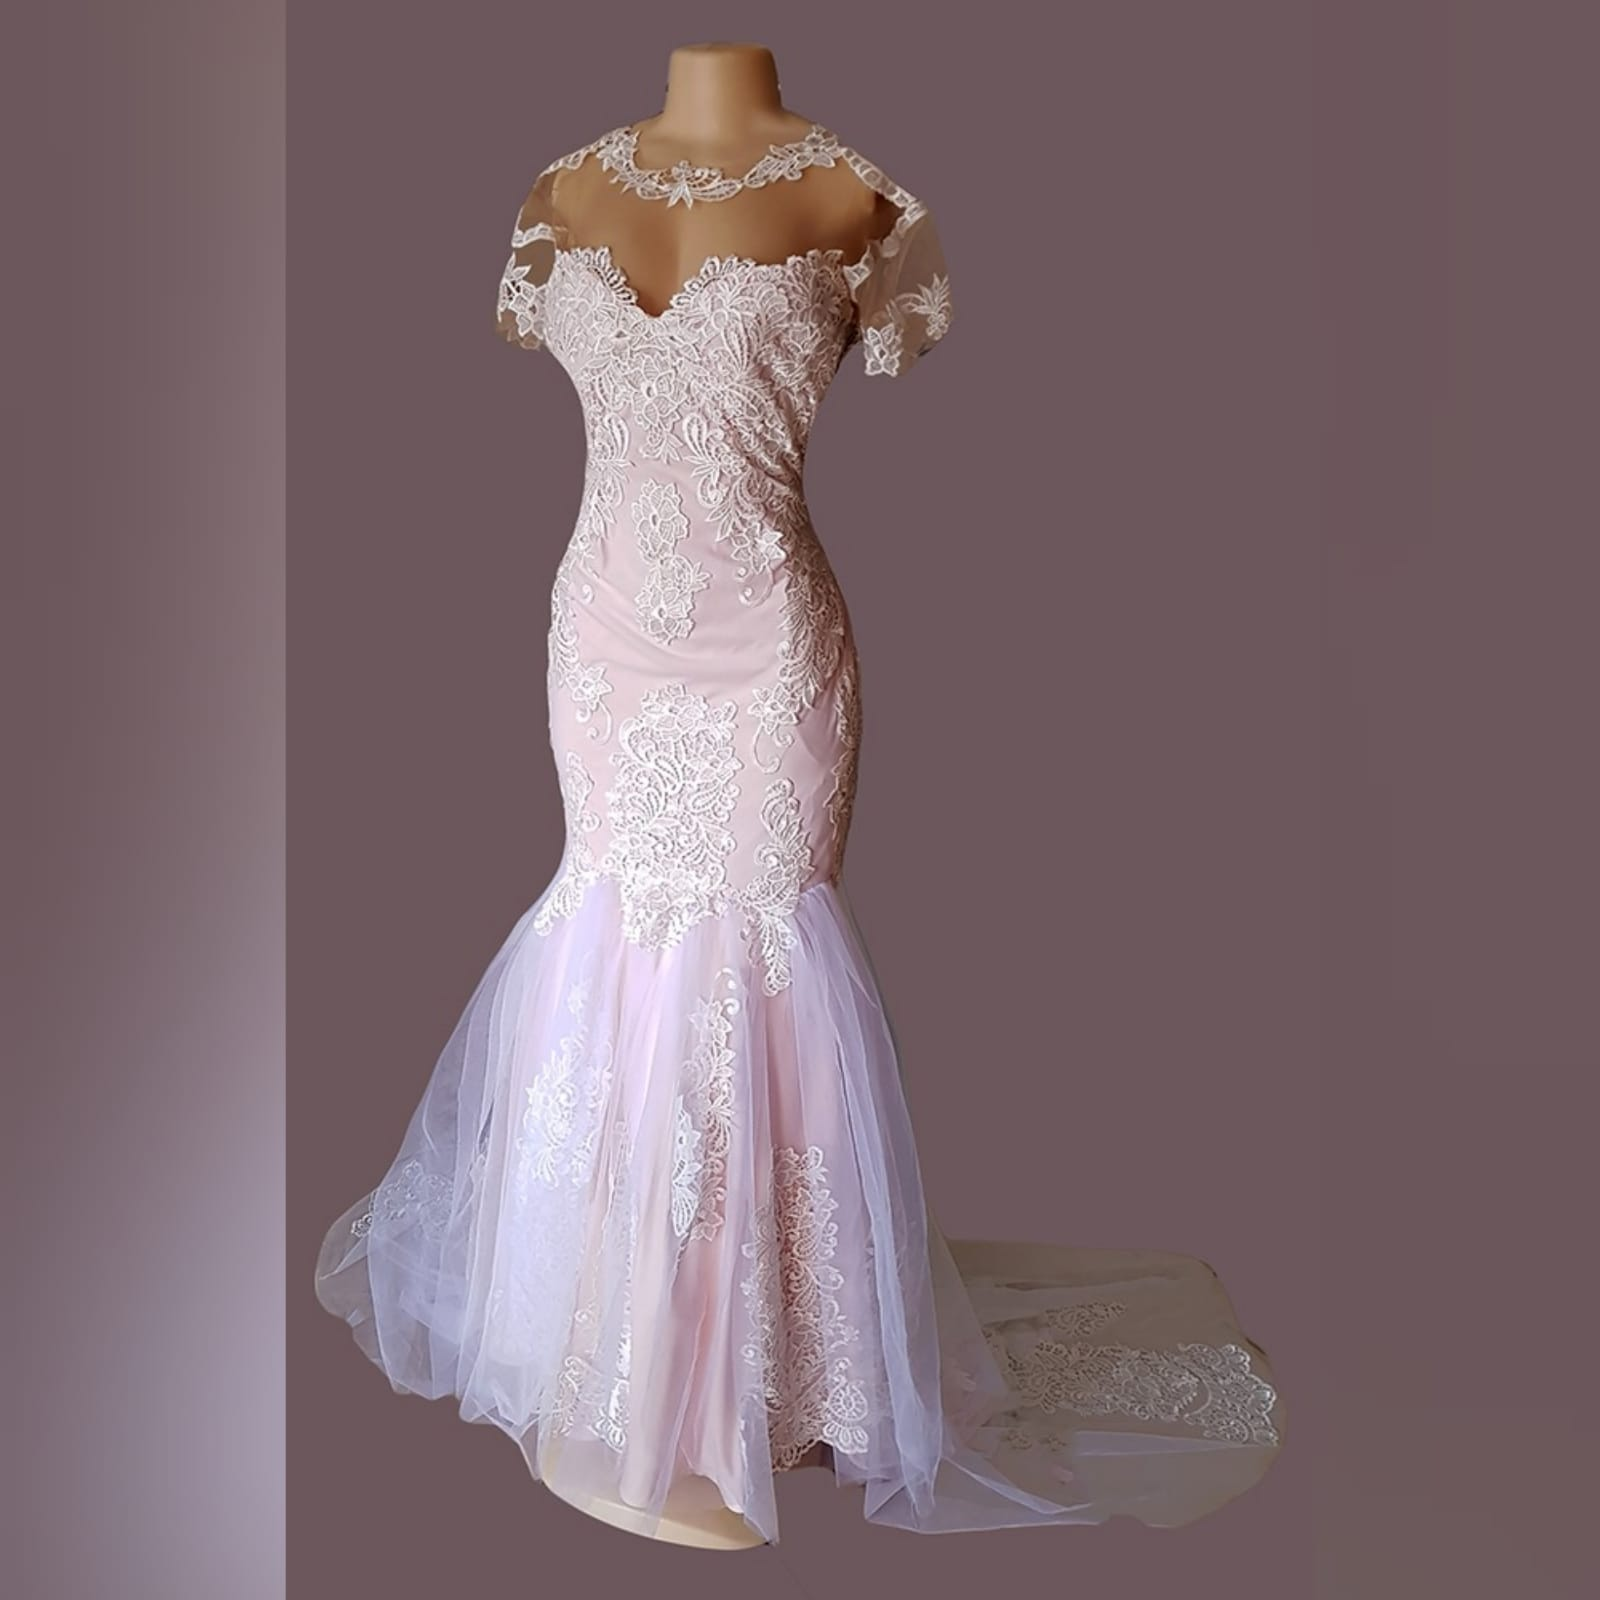 Pink nude & white tulle mermaid wedding dress 4 pink nude & white tulle mermaid wedding dress with a lace bodice, mermaid & train detailed with lace, illusion neckline with cap sleeves detailed with lace.